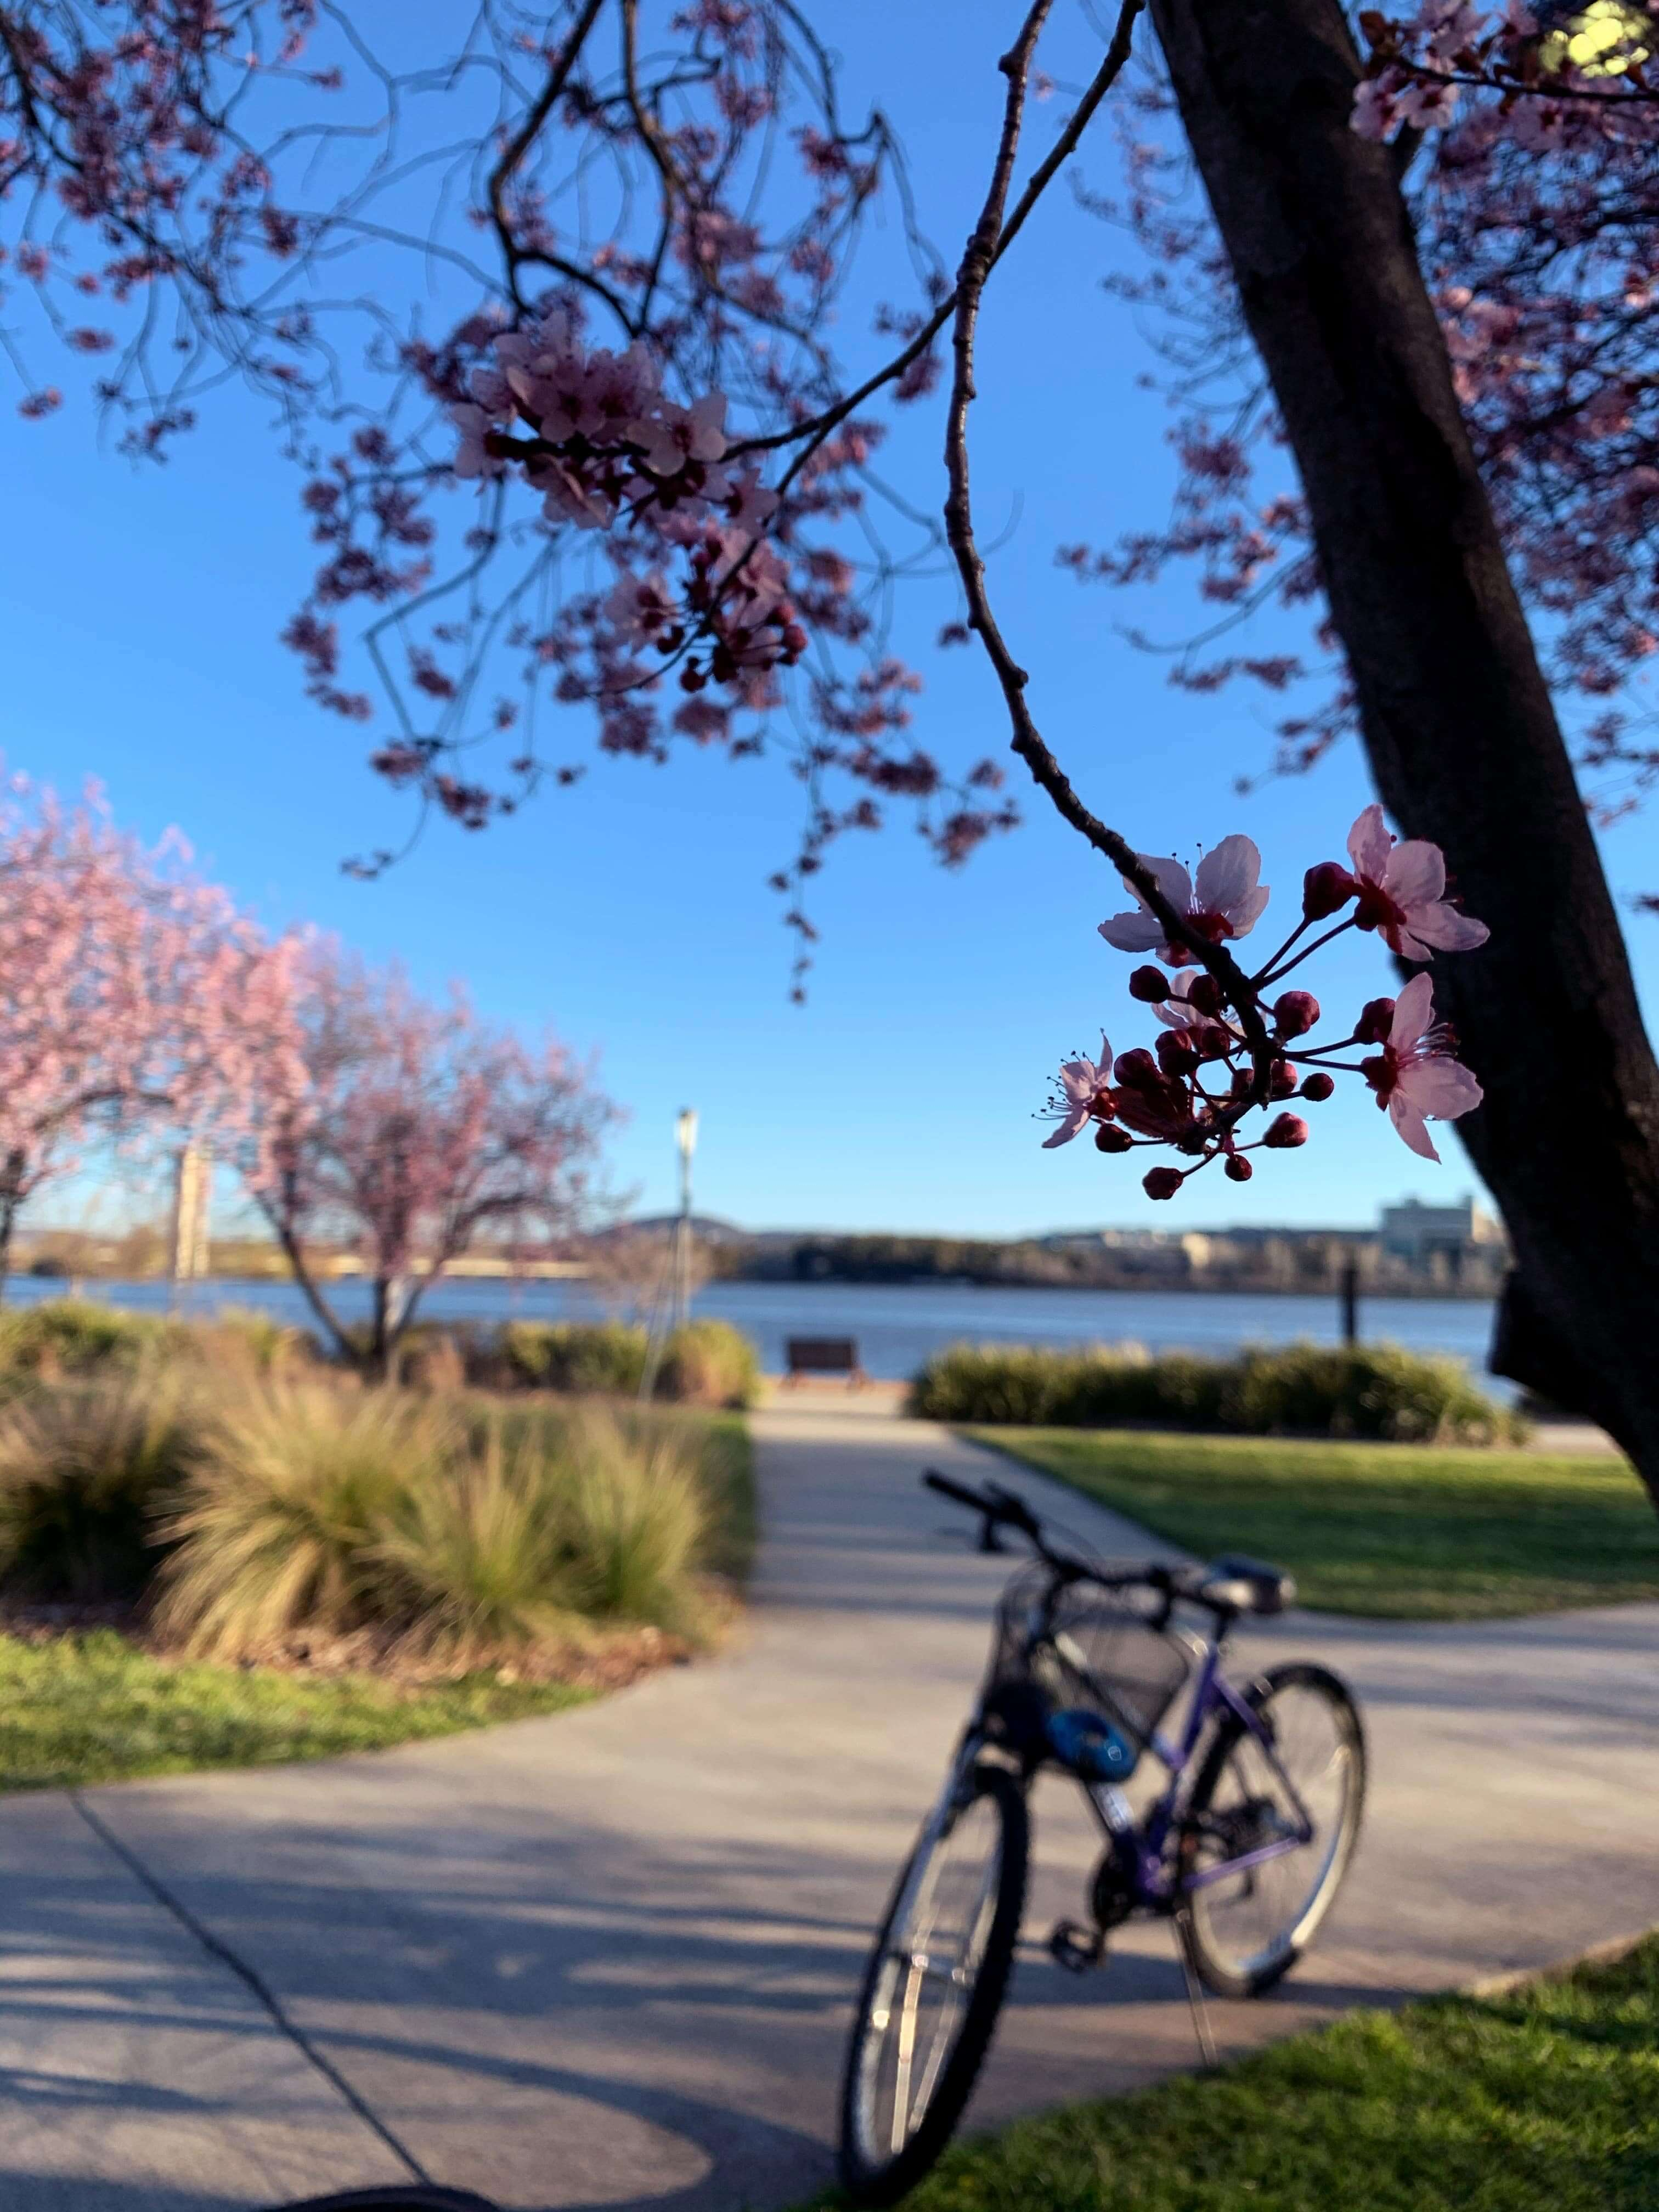 Lake Burly Griffin, Canberra